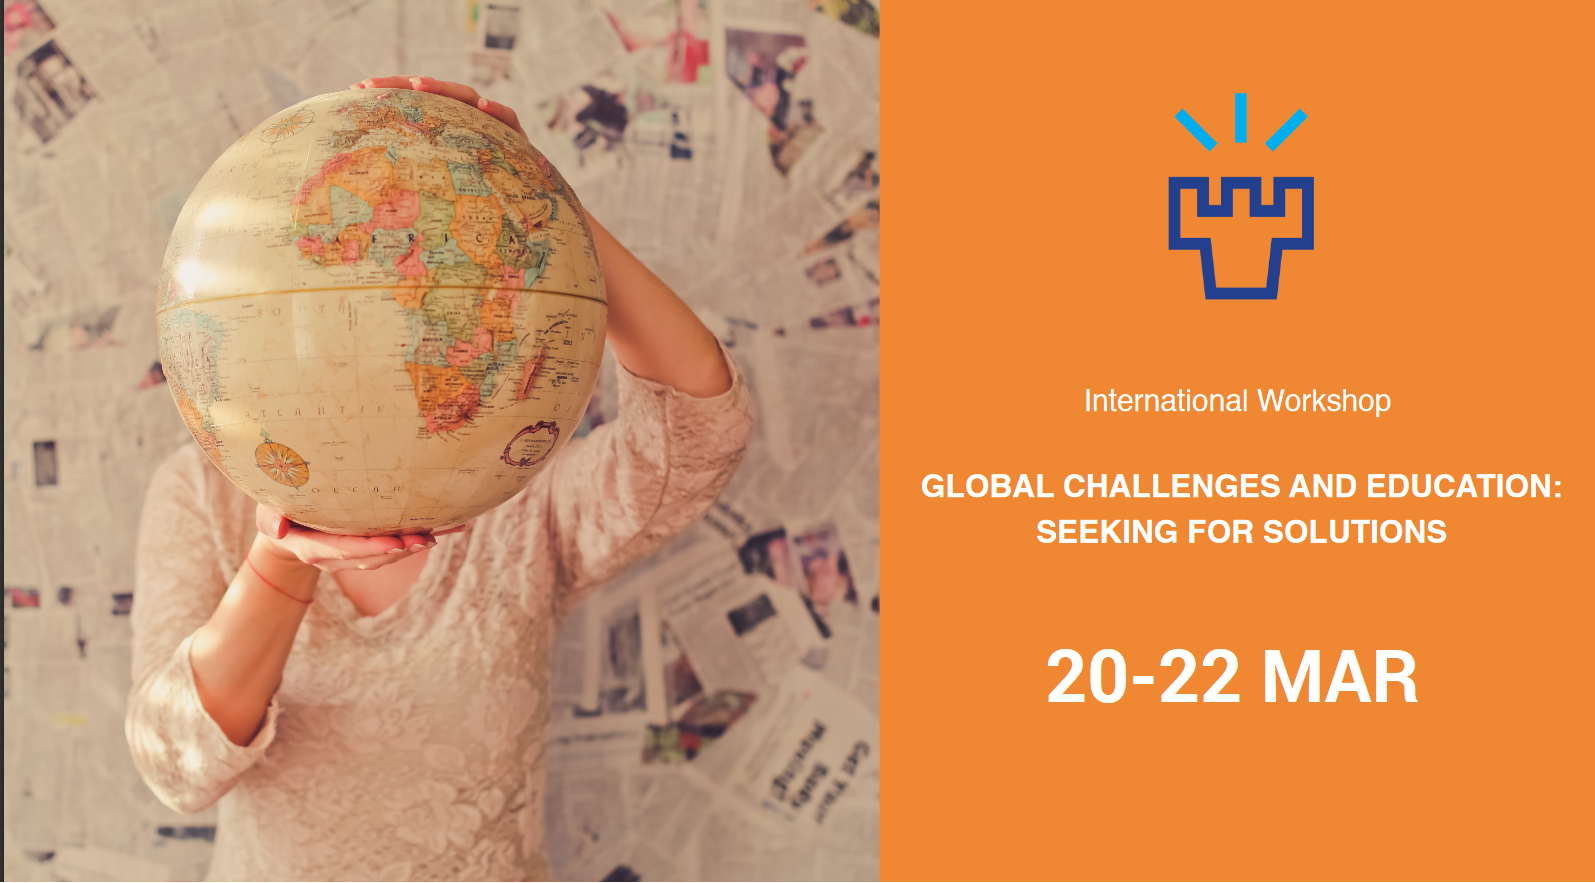 Global challenges and education